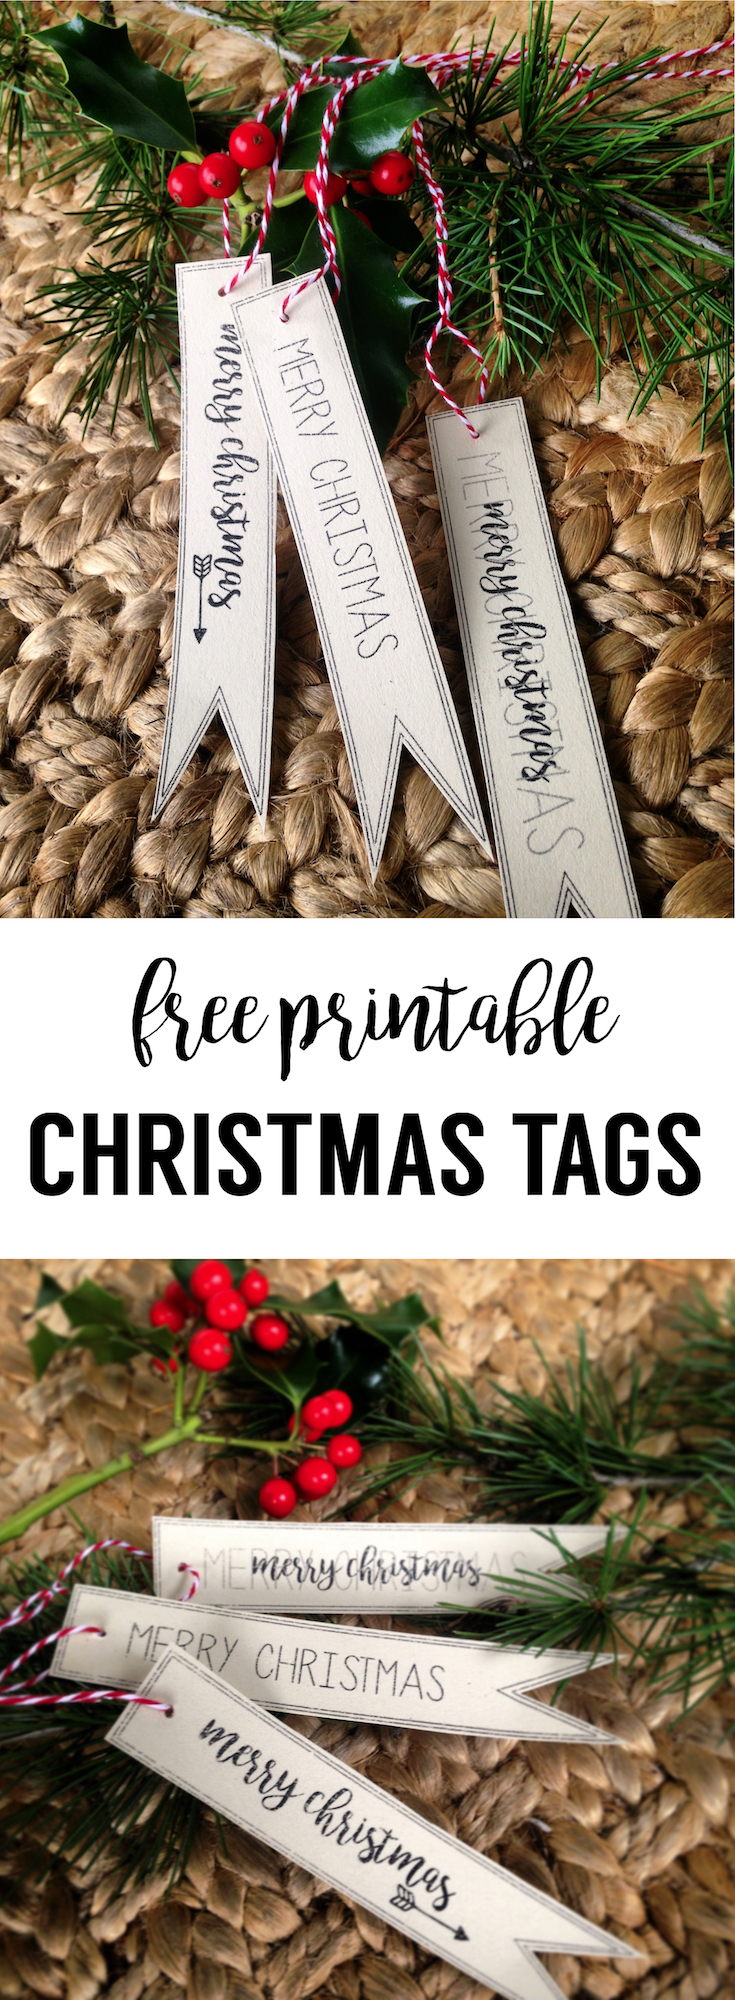 Merry Christmas Tag Free Printable. Attach these gift tags to gifts and packages for your friends and family this Christmas season.